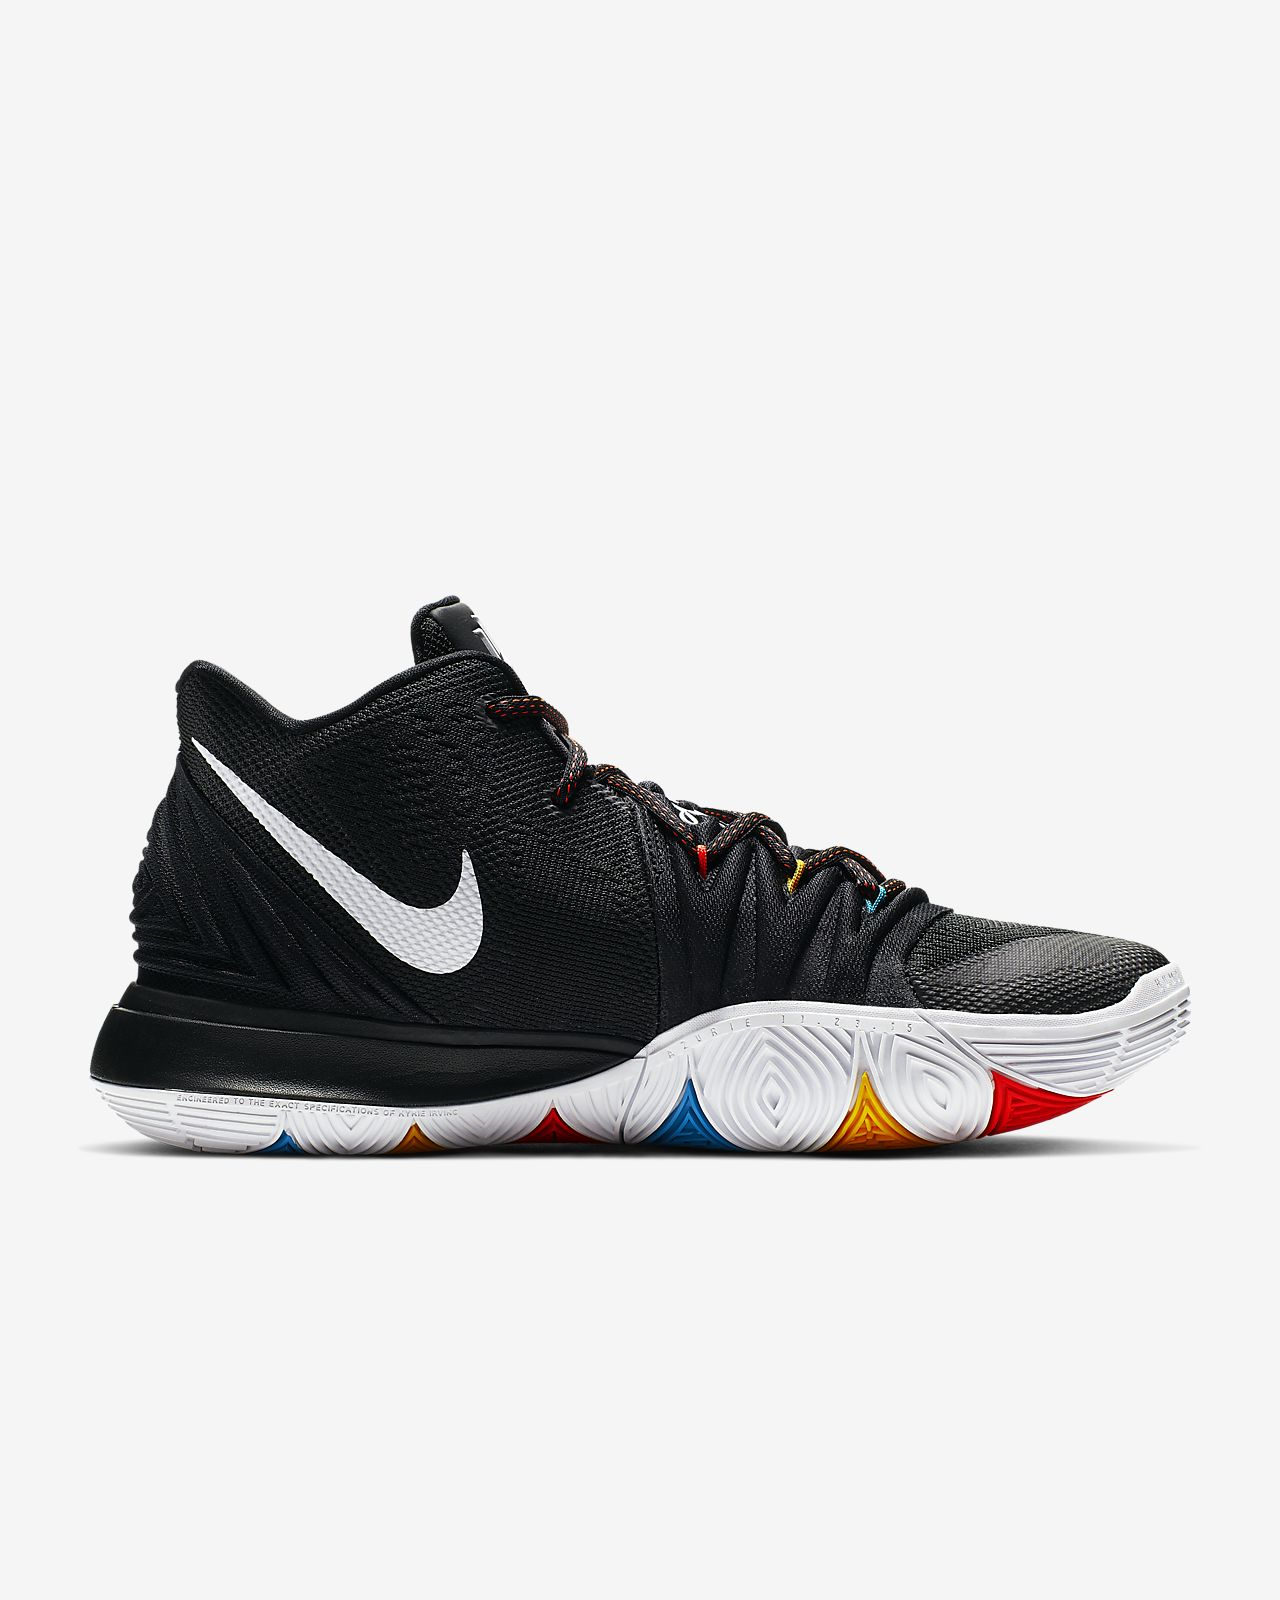 310cc3ba64 Kyrie 5 x Friends Basketball Shoe